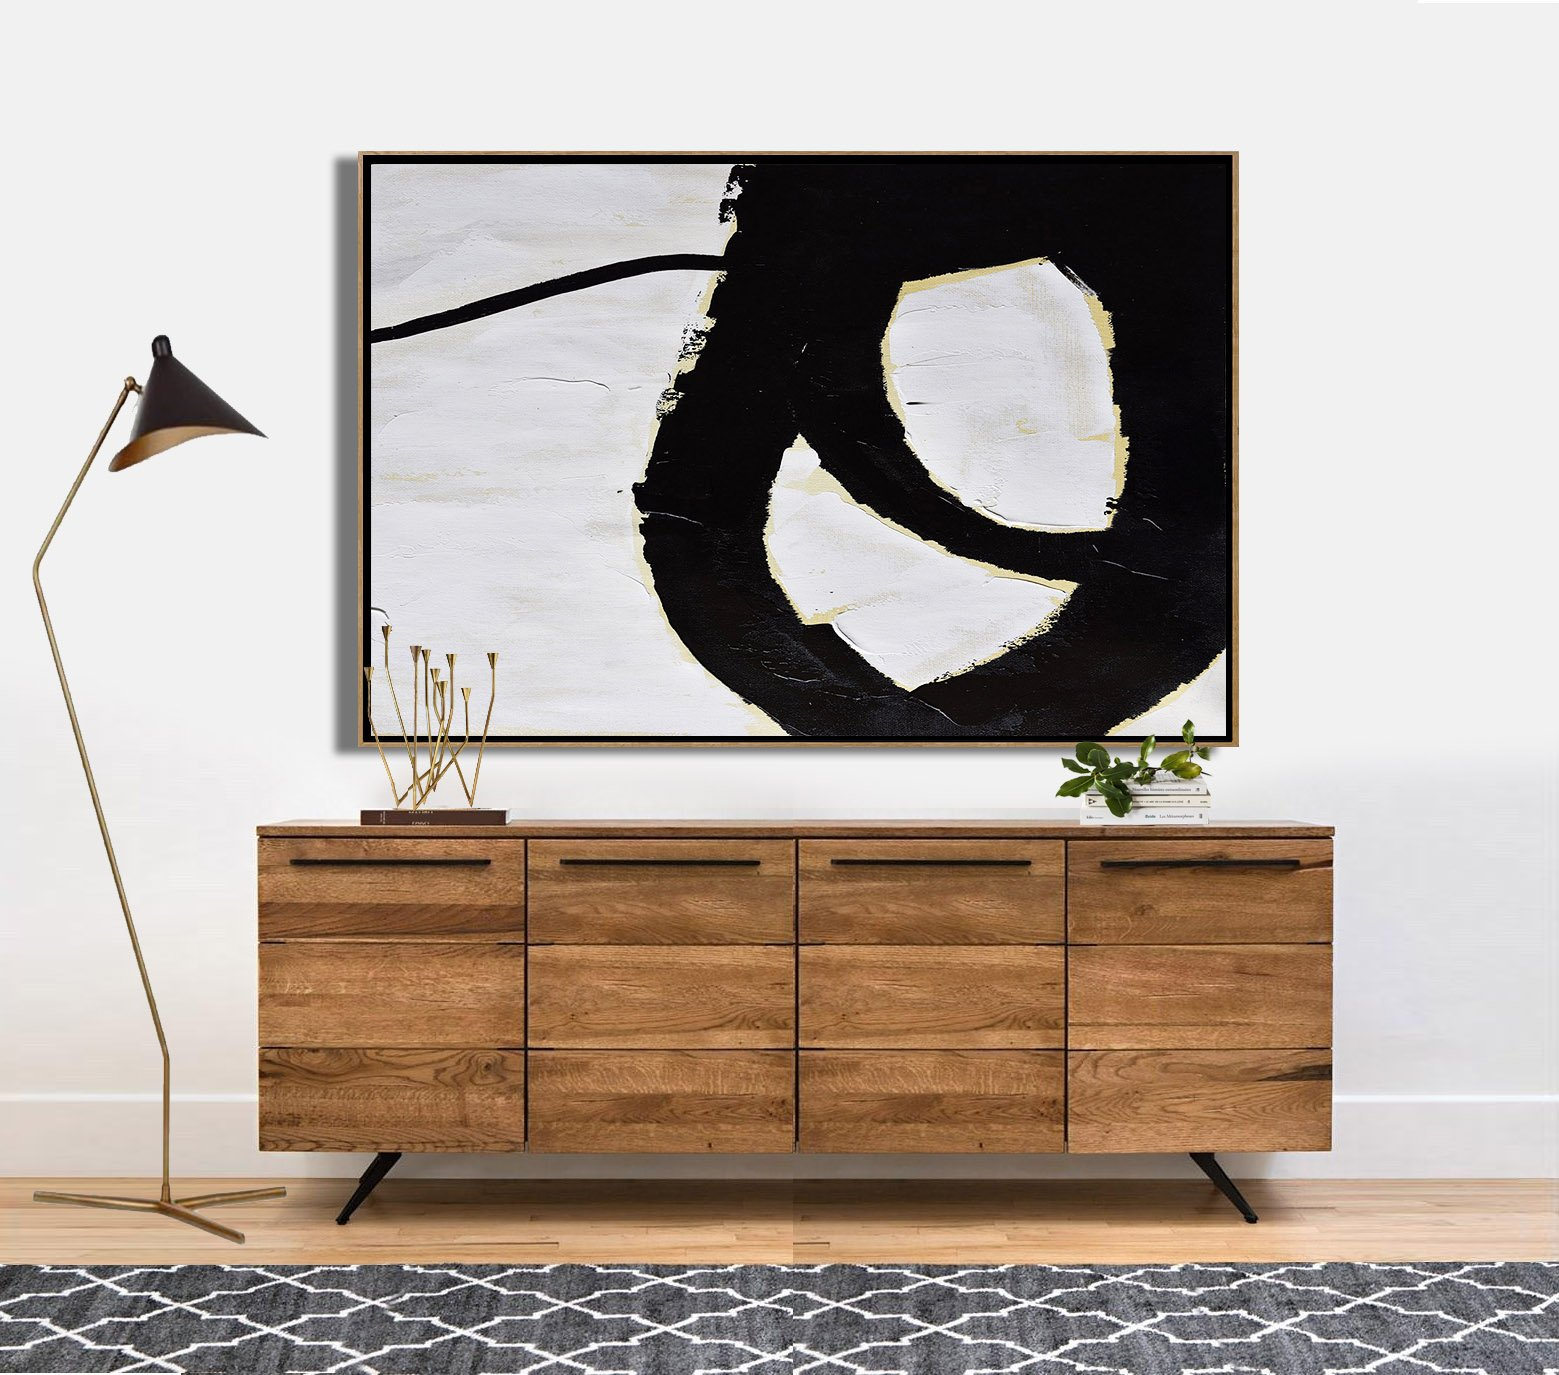 Living Room Wall Art,Horizontal Palette Knife Minimal Canvas Art Painting Black White Beige - Hand-Painted Canvas Art